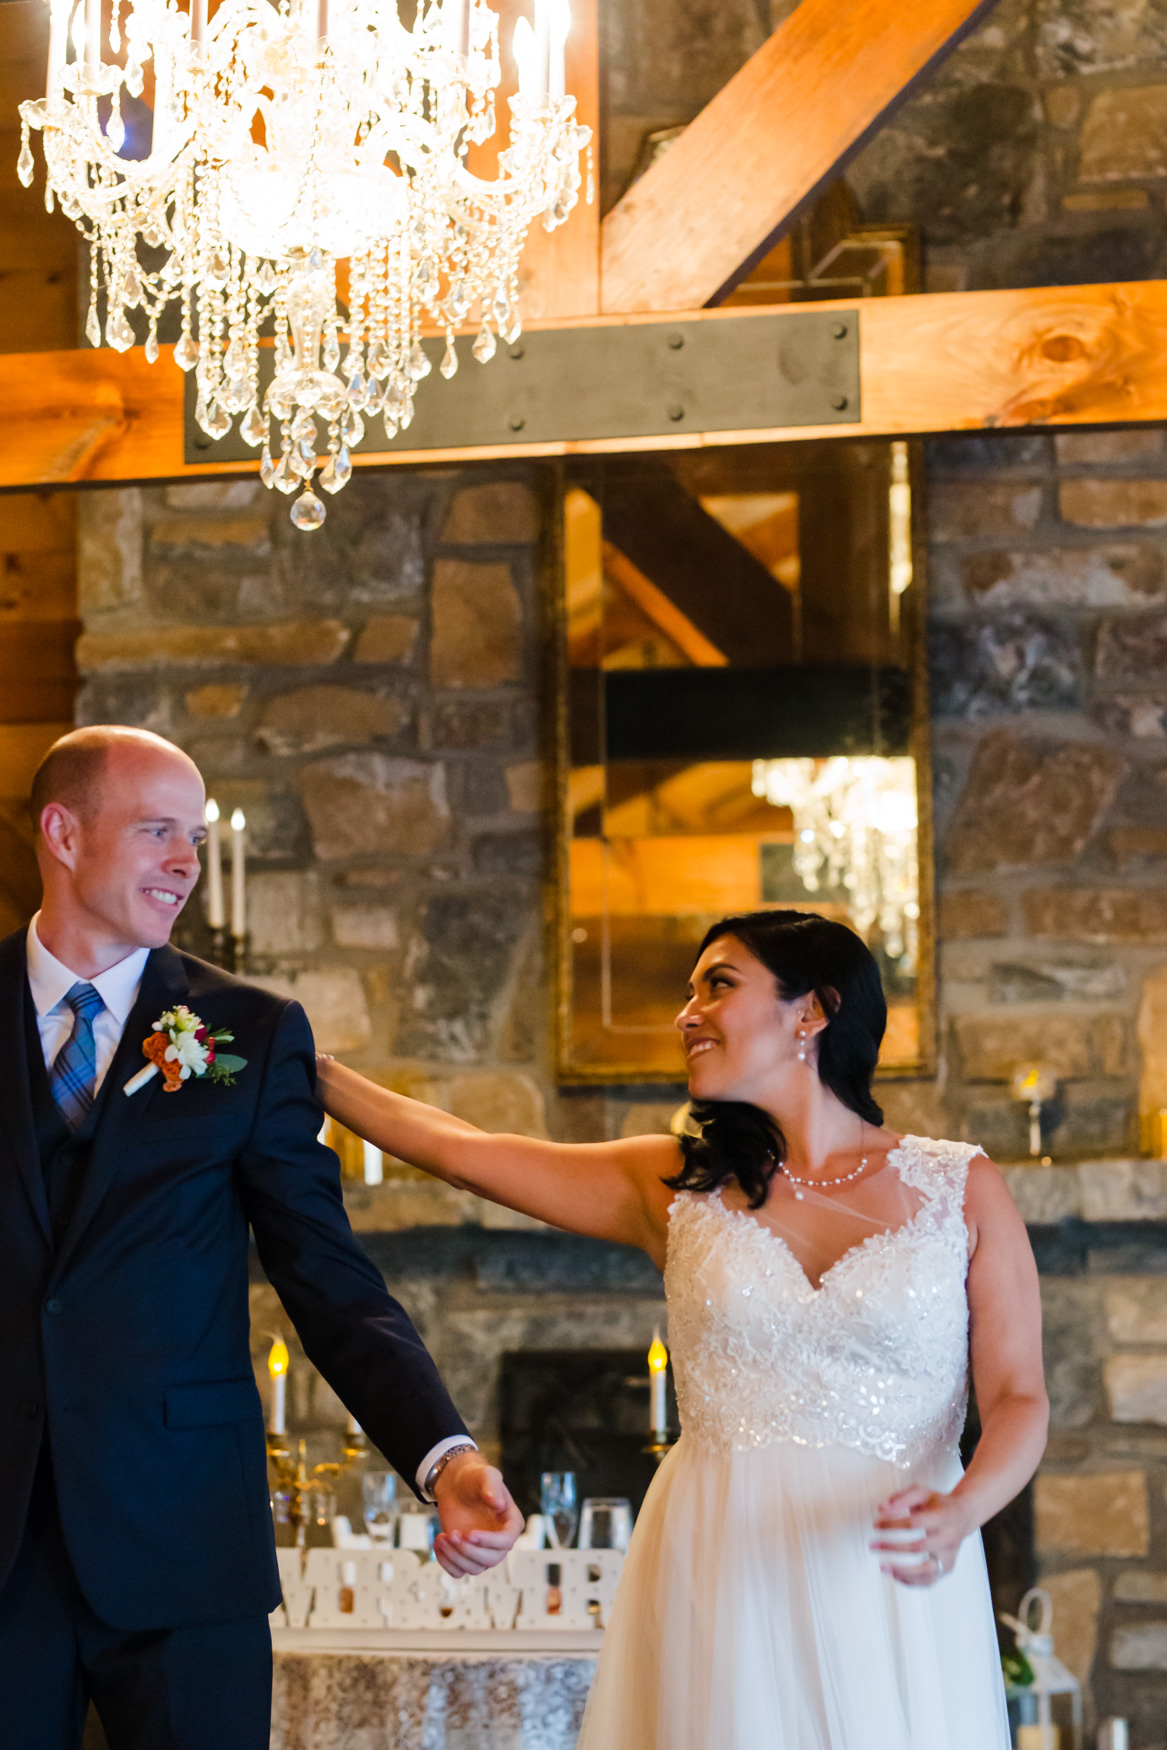 First Dance Waynesville NC Wedding Photography Inn at Tranquility Farm